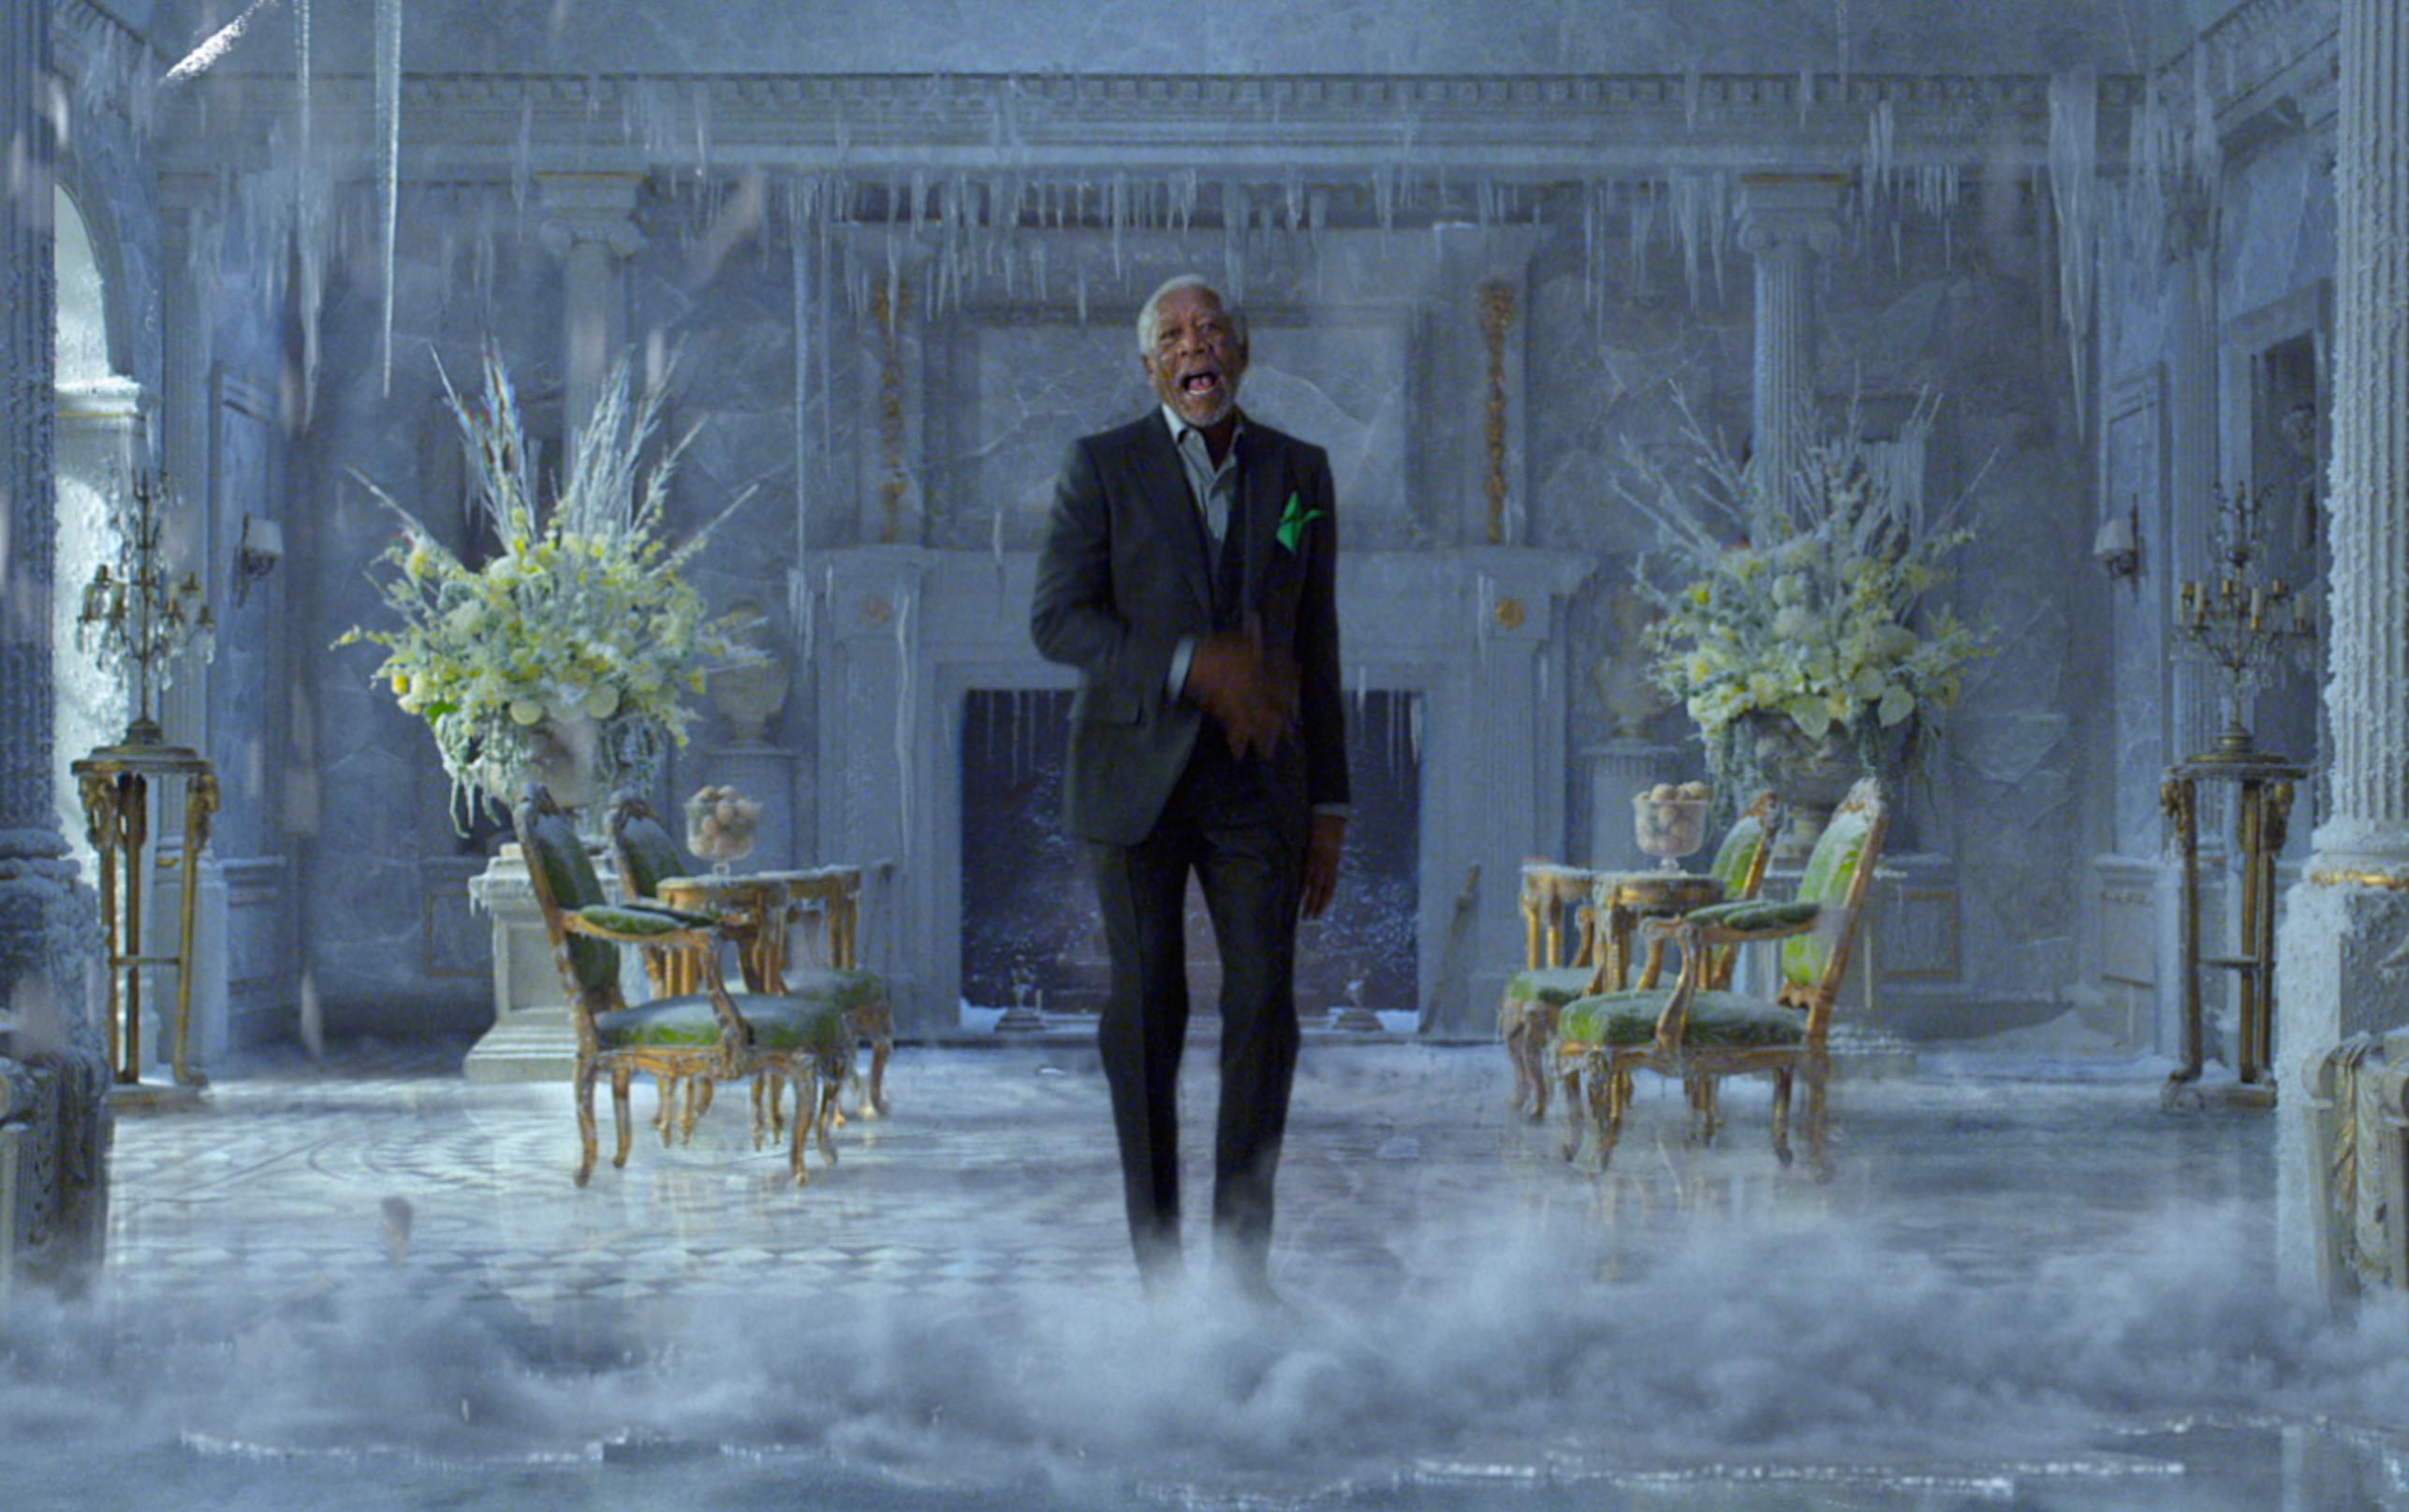 This photo provided by PepsiCo shows Morgan Freeman in a scene from the company's Mountain Dew Ice Super Bowl spot. For the 2018 Super Bowl, marketers are paying more than $5 million per 30-second spot to capture the attention of more than 110 million viewers. (PepsiCo via AP)